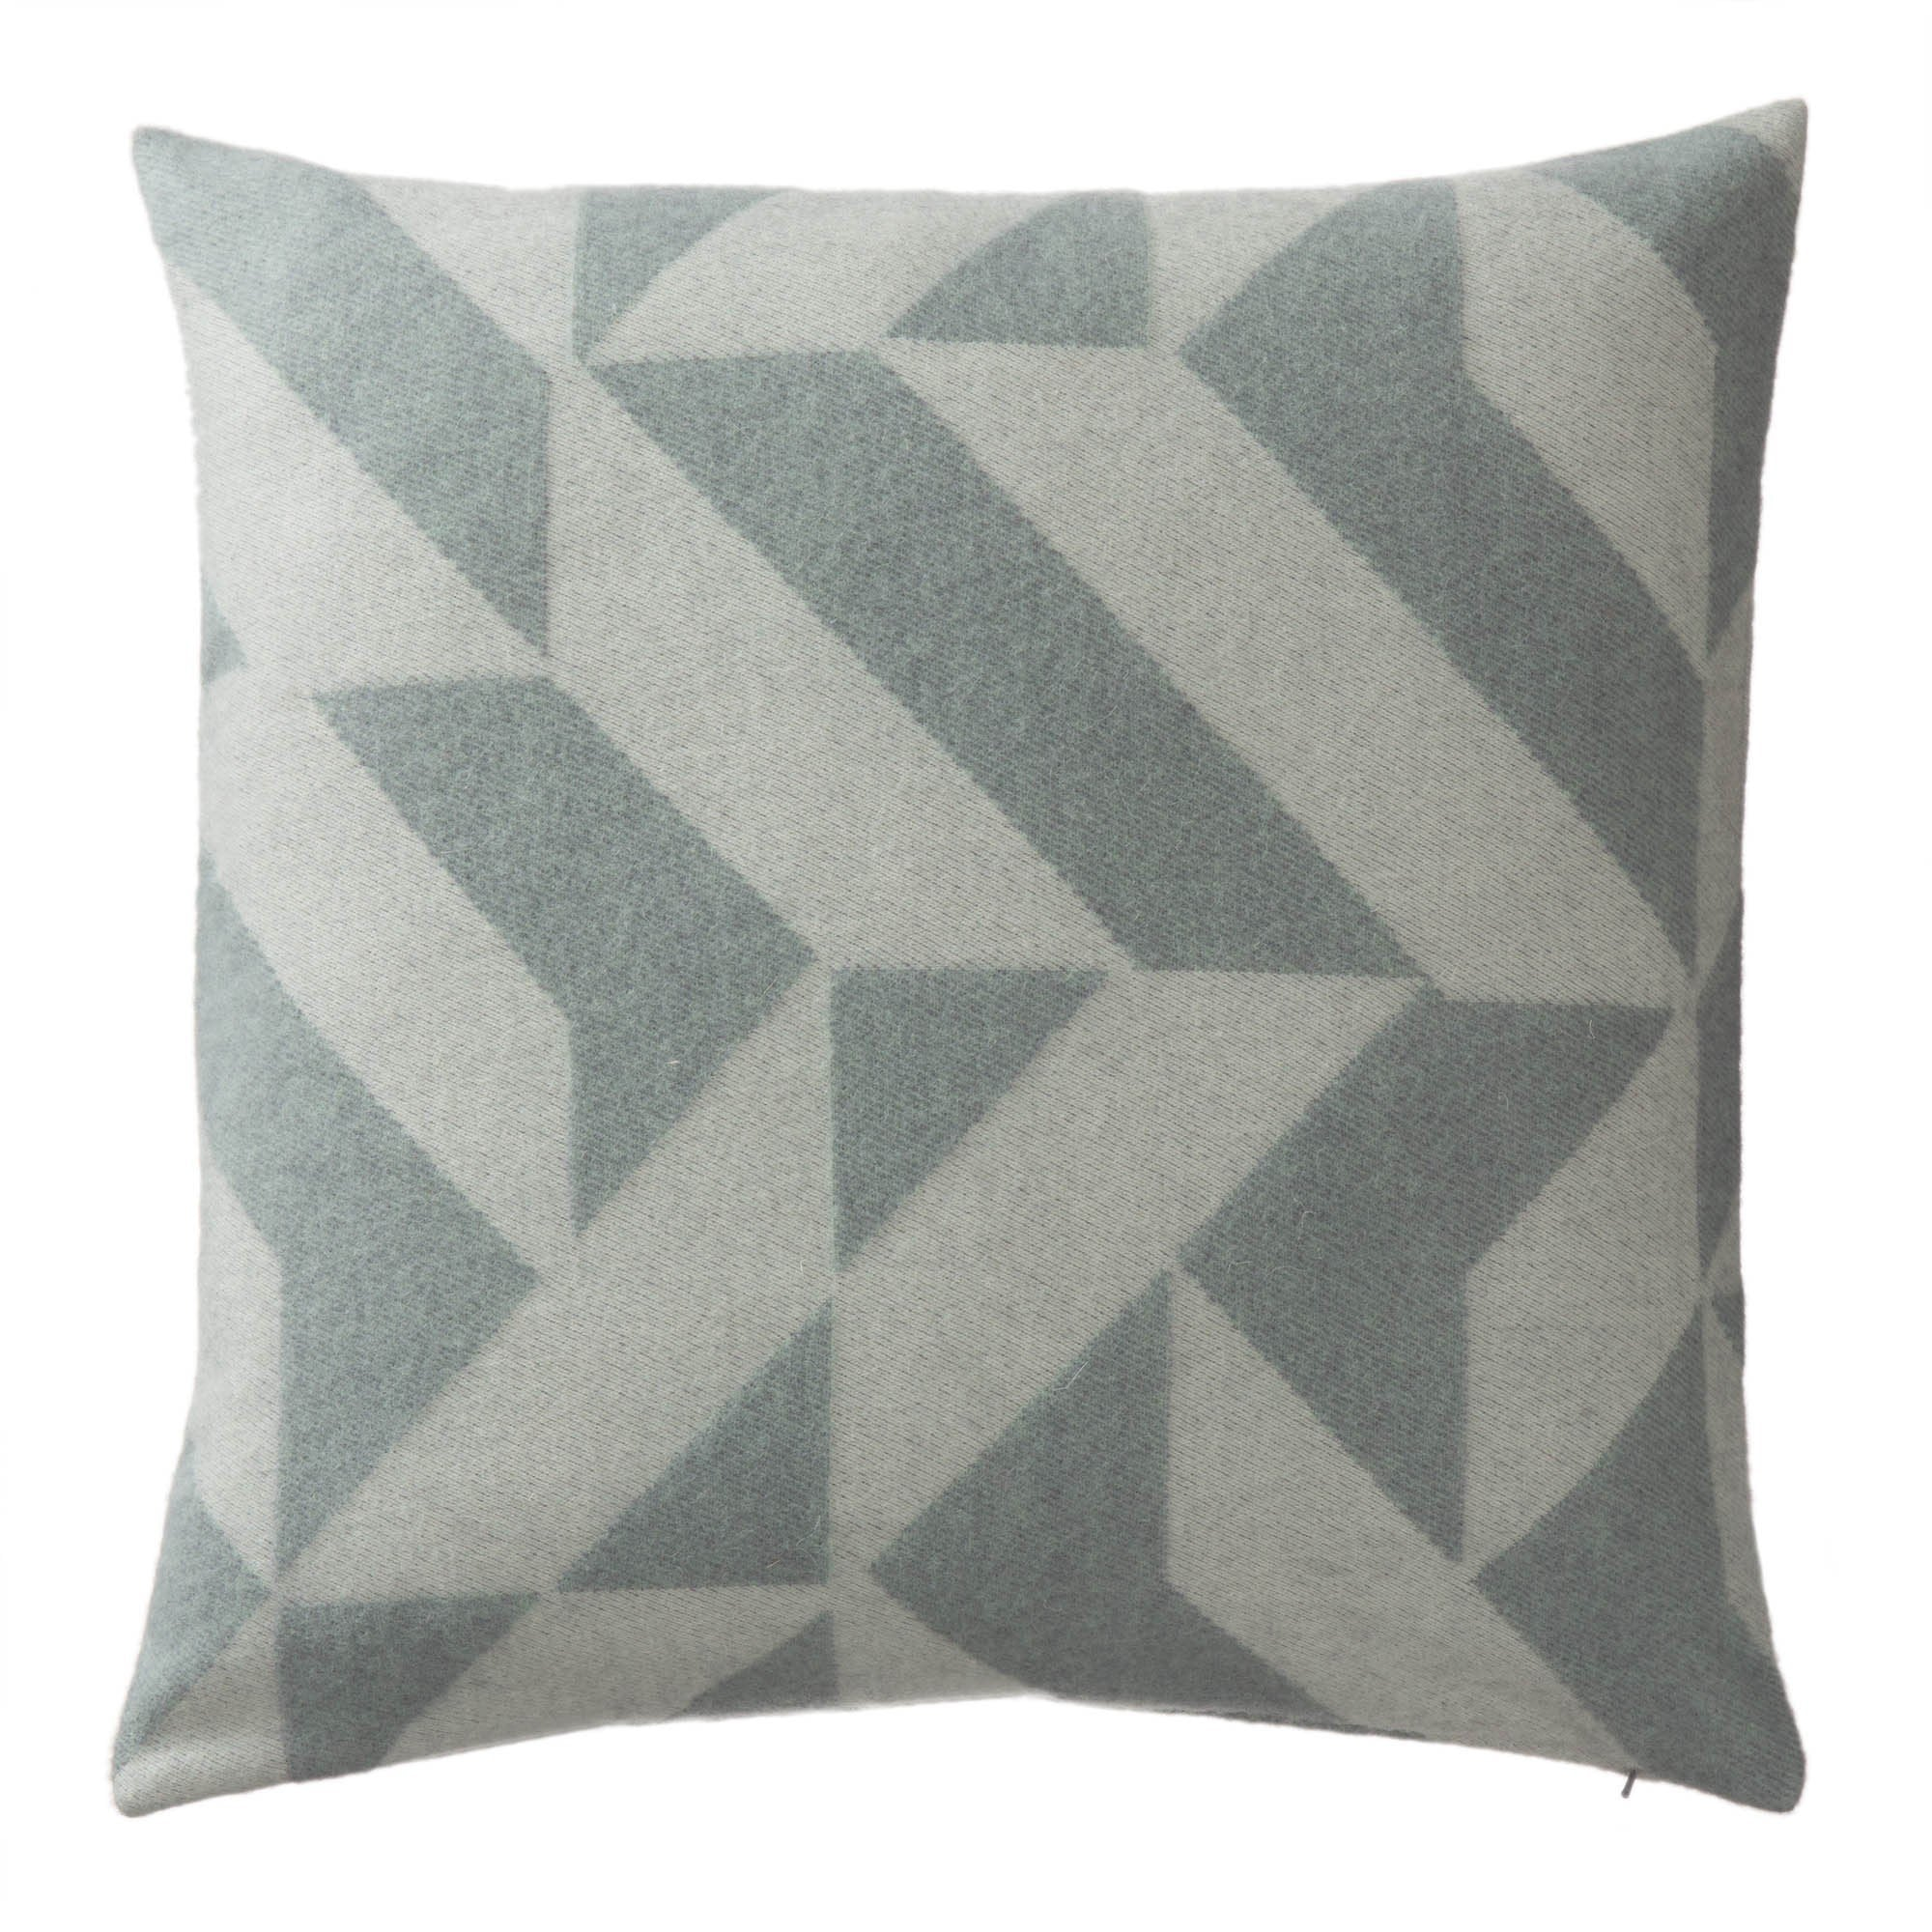 Farum cushion cover, grey blue & cream, 100% merino wool